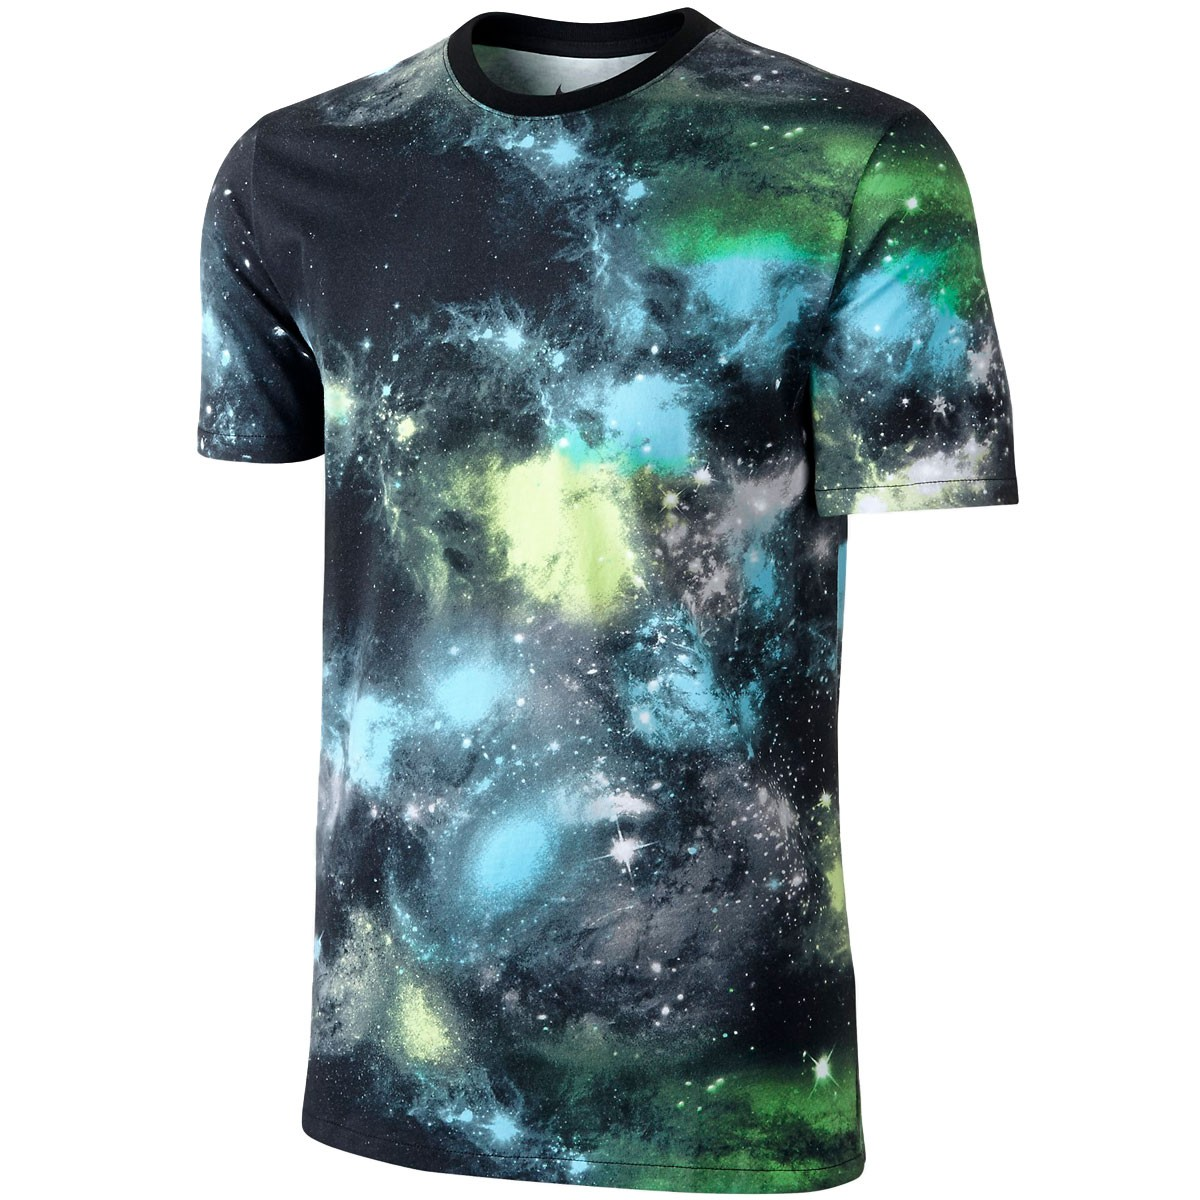 nebula haze in t shirt - photo #26